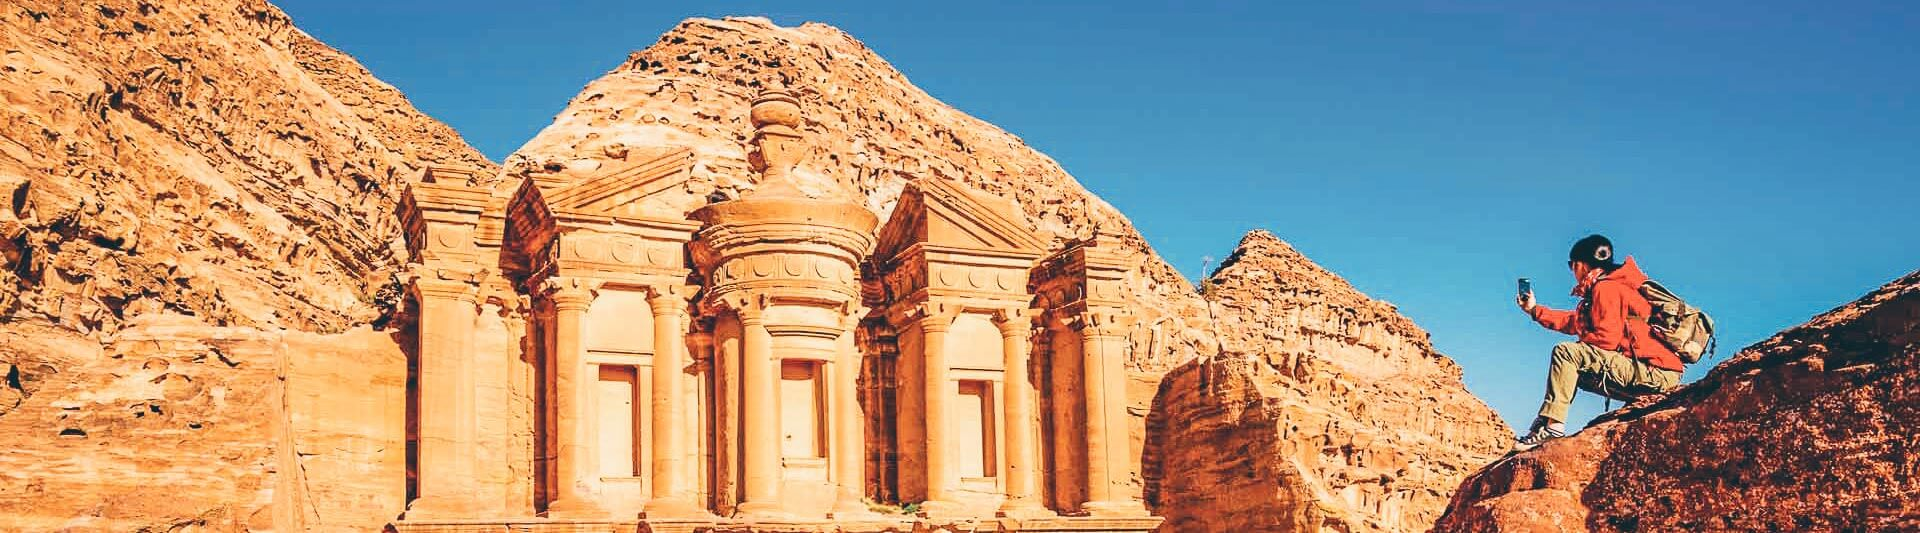 conitki-destinations-africa-middle-east-jordan